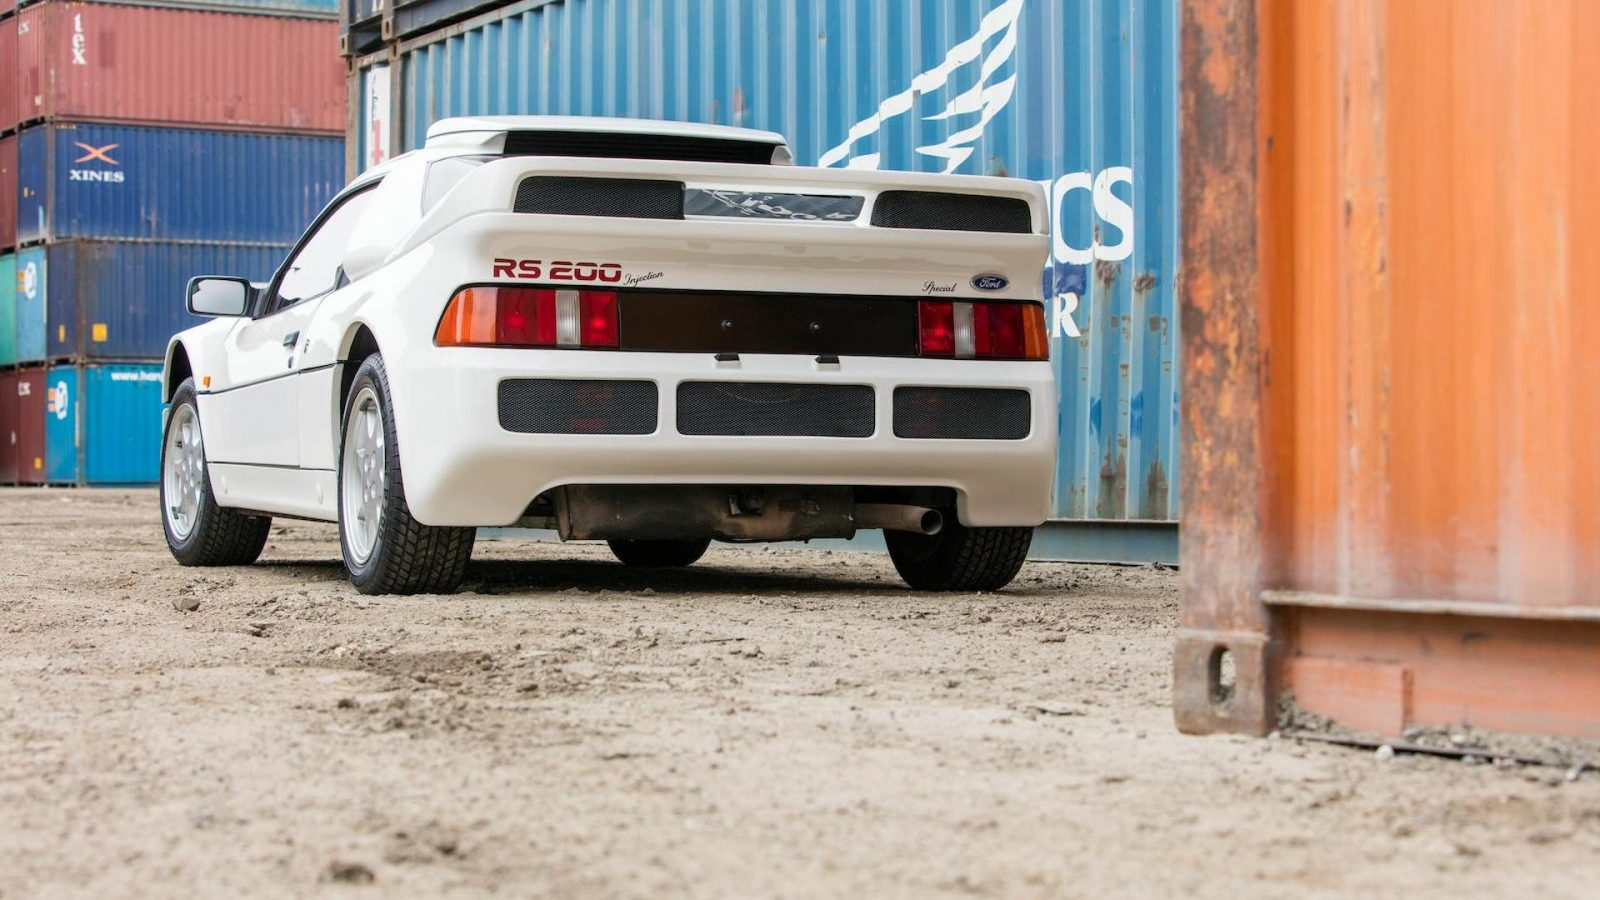 1986-ford-rs200 (1)